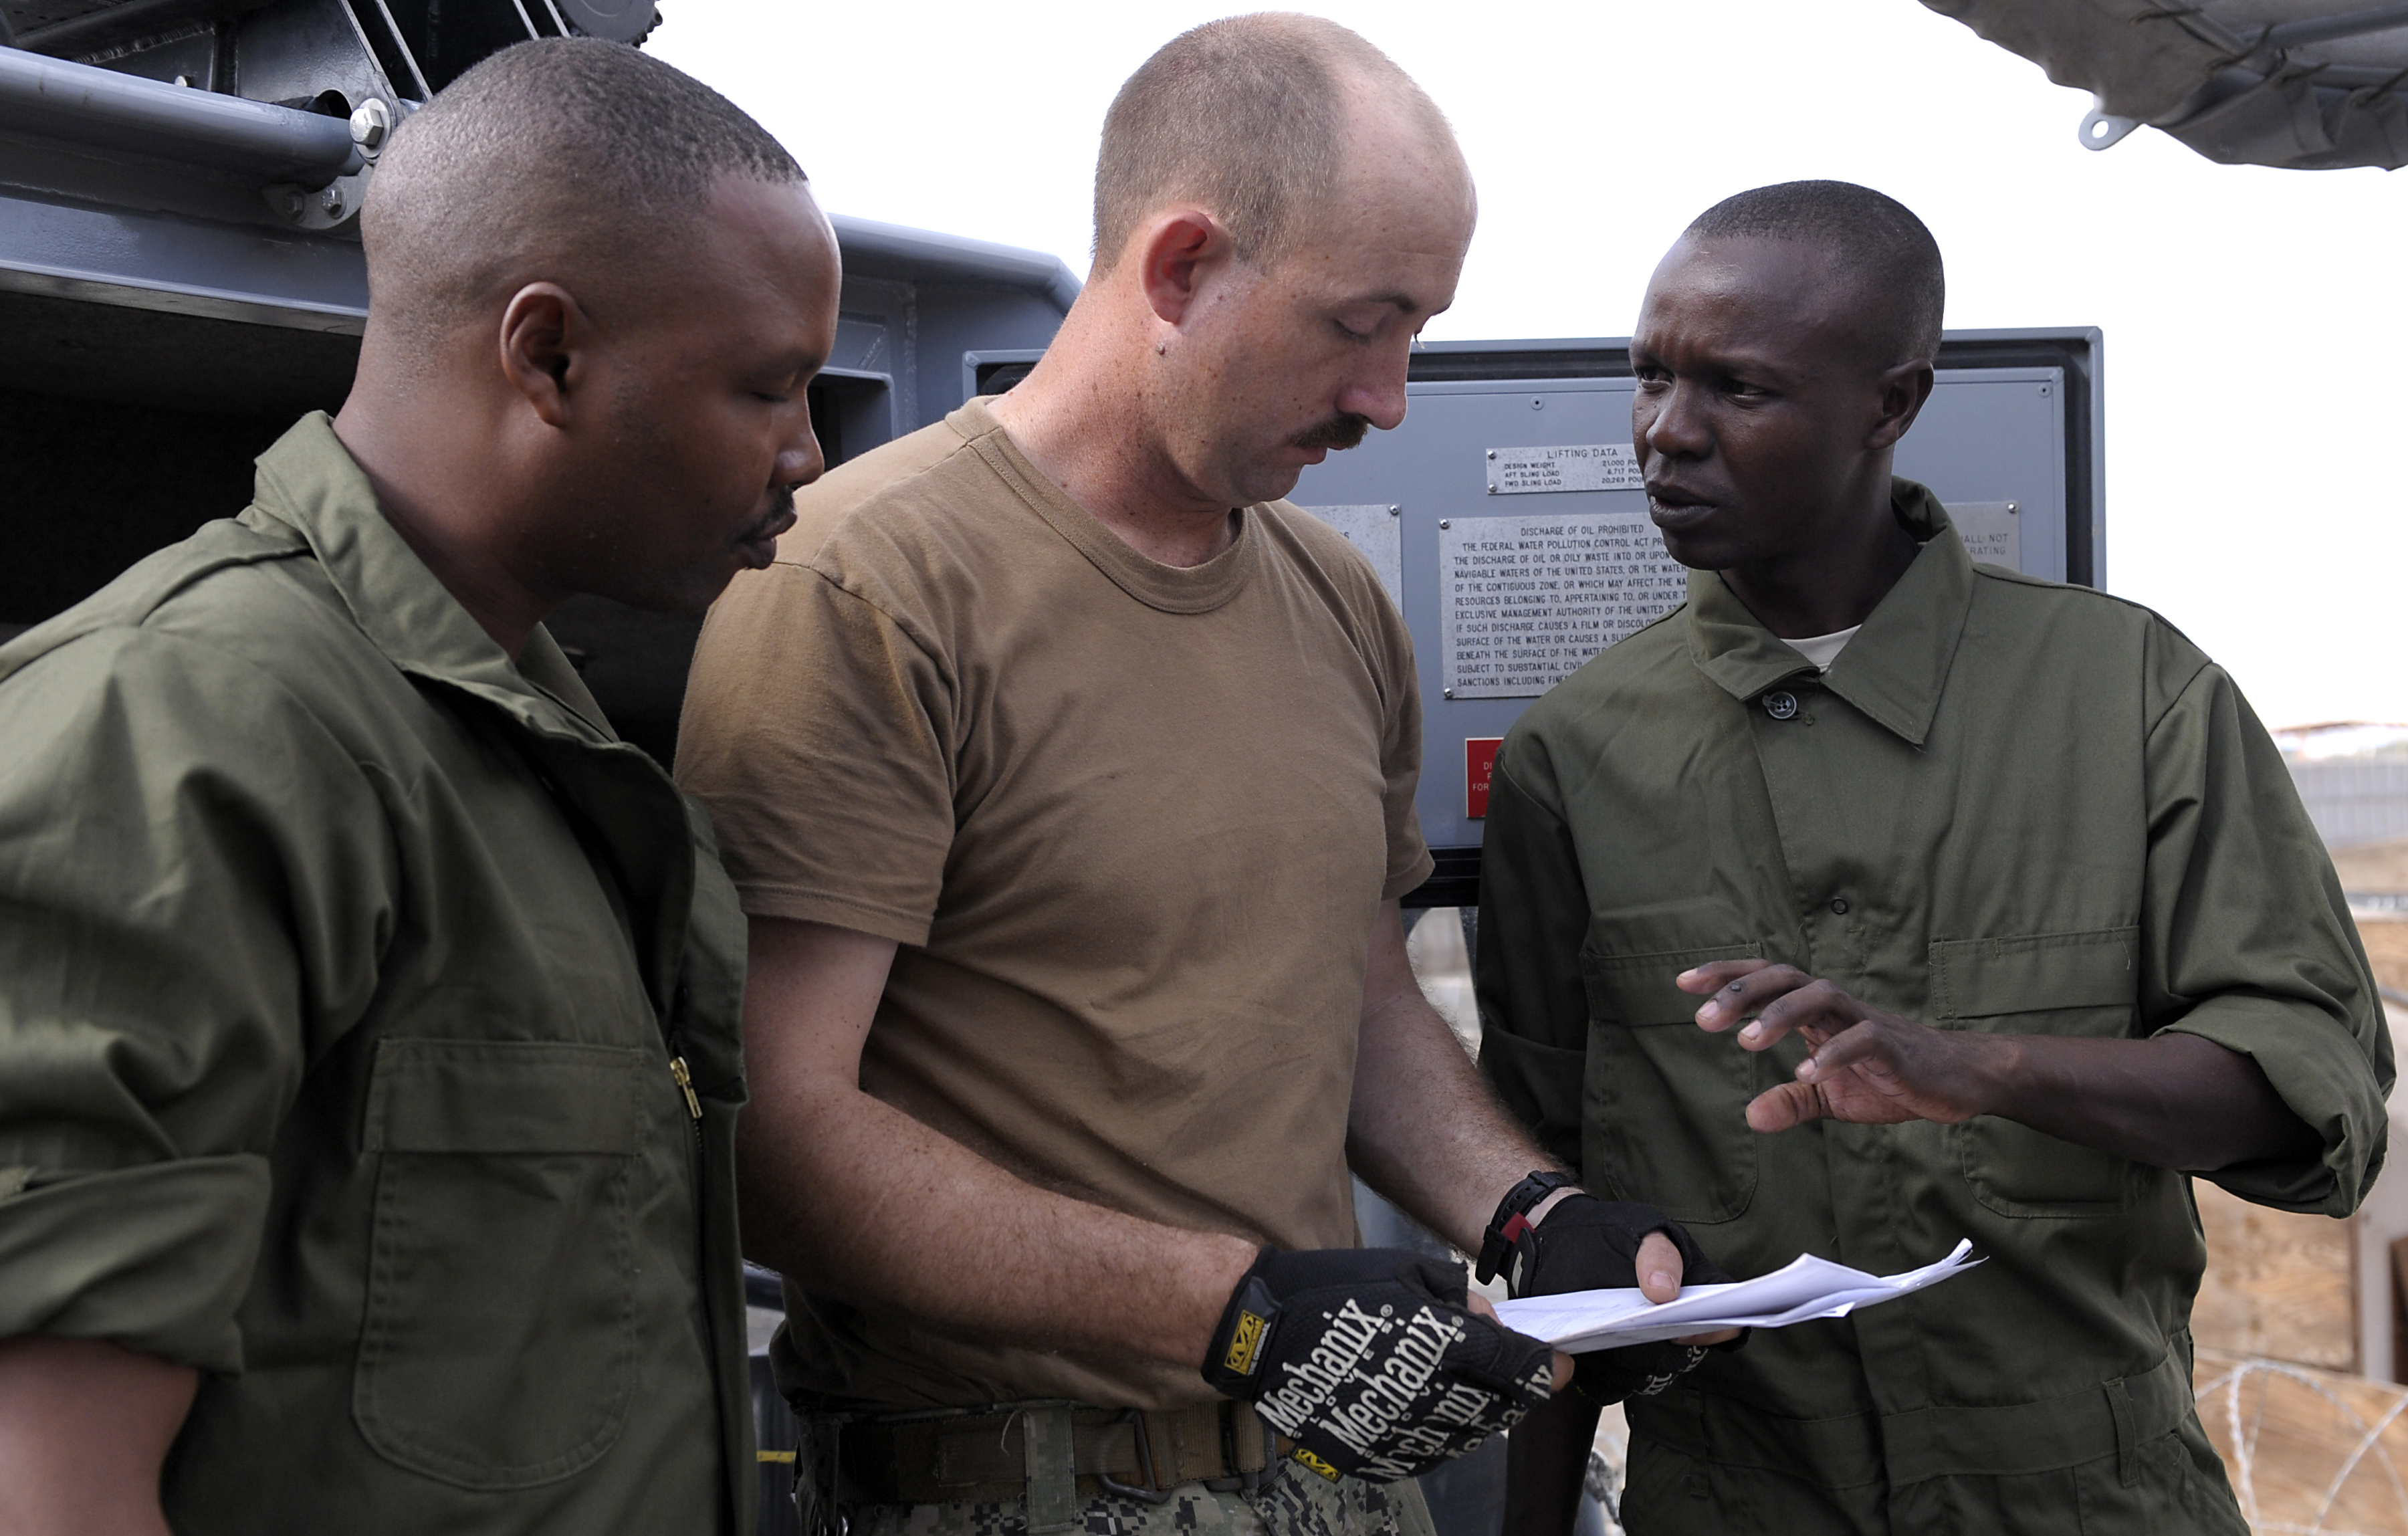 Engineman 2nd Class Michael Schulz, Coastal Riverine Squadron 10, and members of the Kenya Defence Forces Navy discuss maintenance check lists while performing preventative maintenance at Camp Lemonnier, Djibouti, Jan. 18, 2016. The Kenyans and Americans met for a two-day maintenance and operations seminar. (U.S. Air Force photo by Tech. Sgt. Dan DeCook)